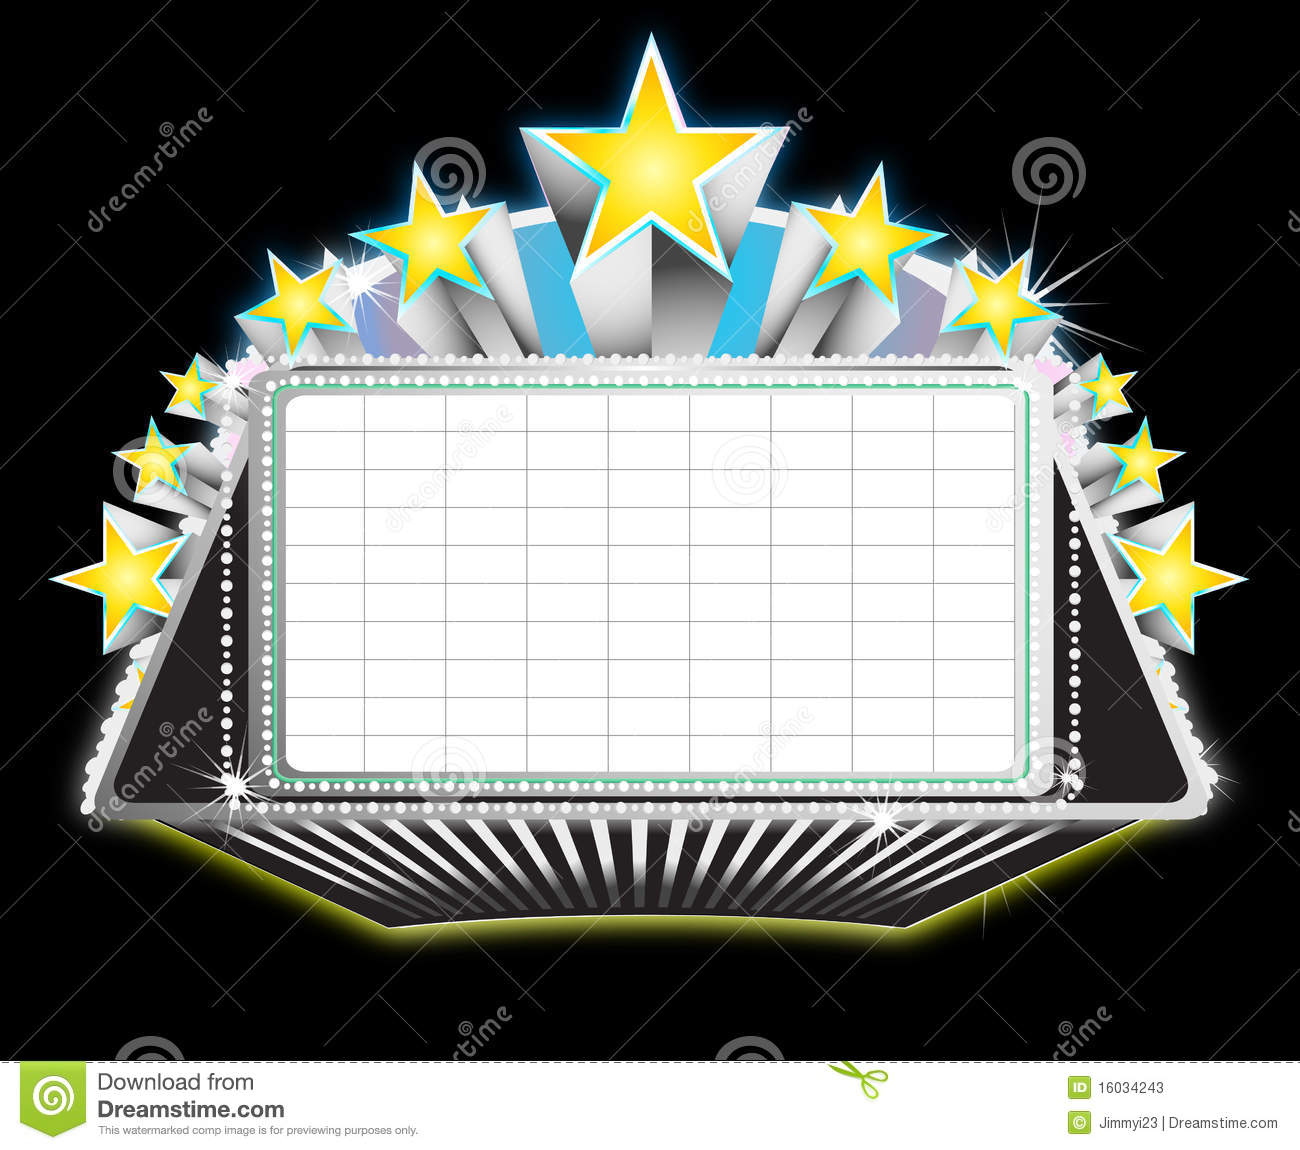 Broadway marquee clipart driverlayer search engine for Theatre sign clipart